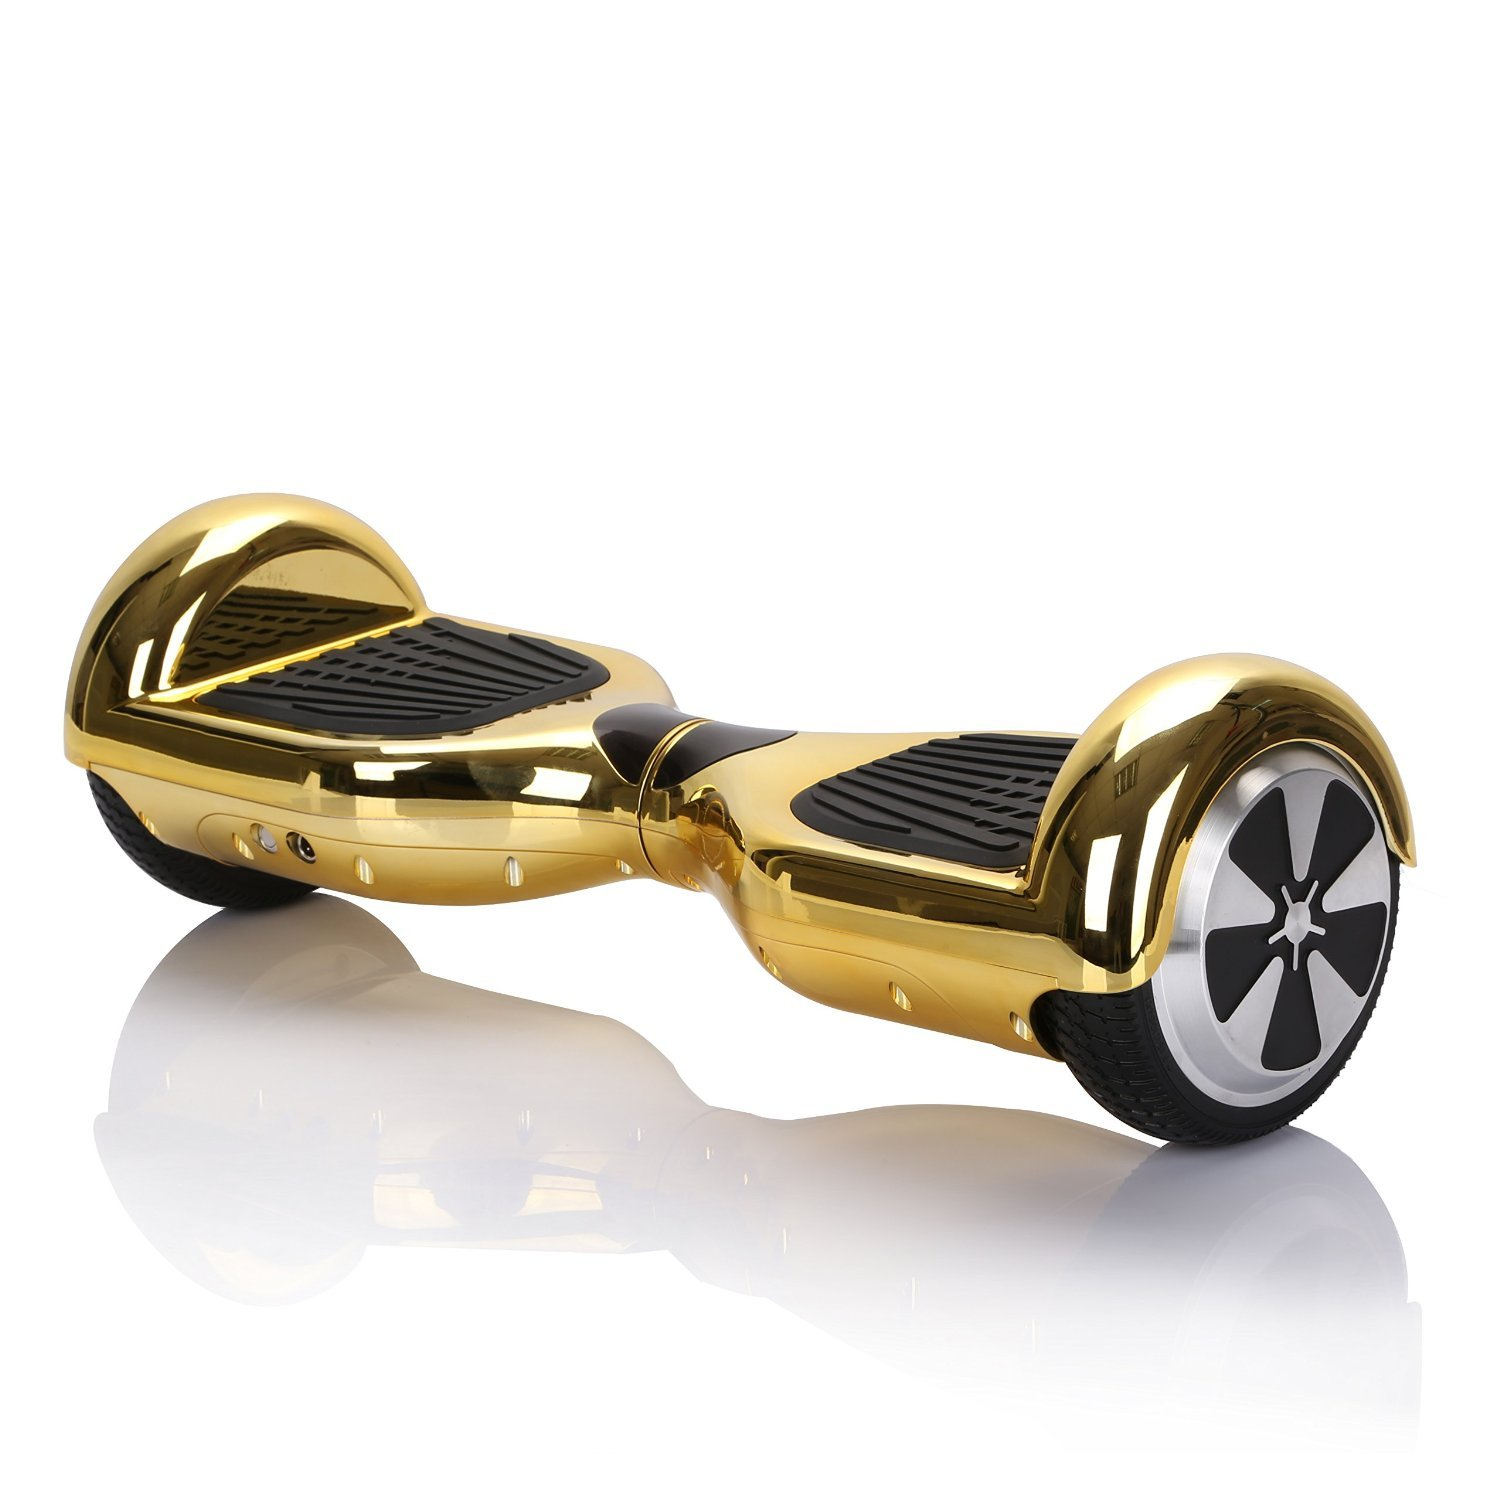 6.5 Inch Hoverboard Self Balancing Scooter Oxboard Chrome Gold